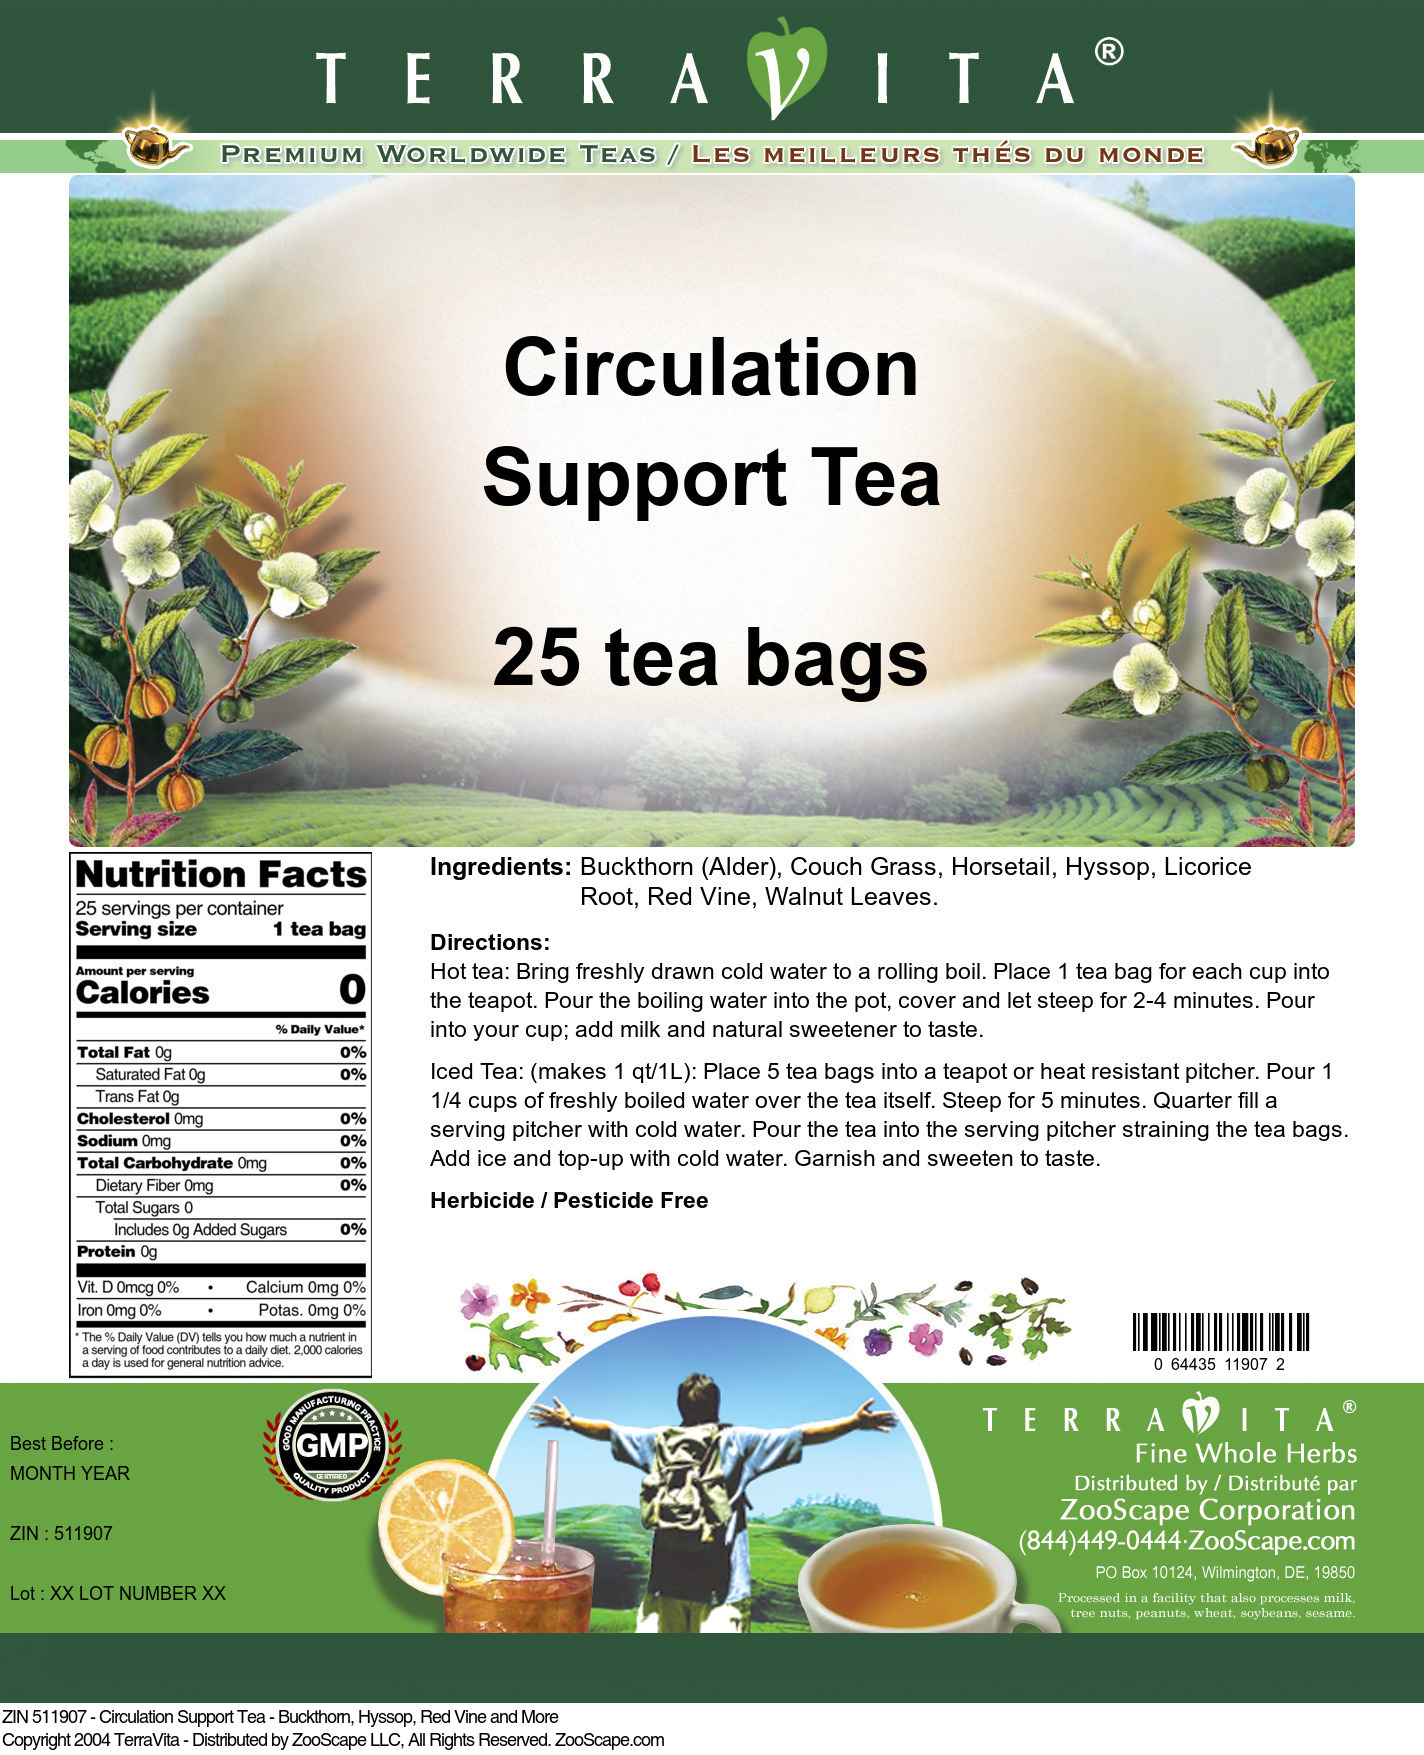 Circulation Support Tea - Buckthorn, Hyssop, Red Vine and More